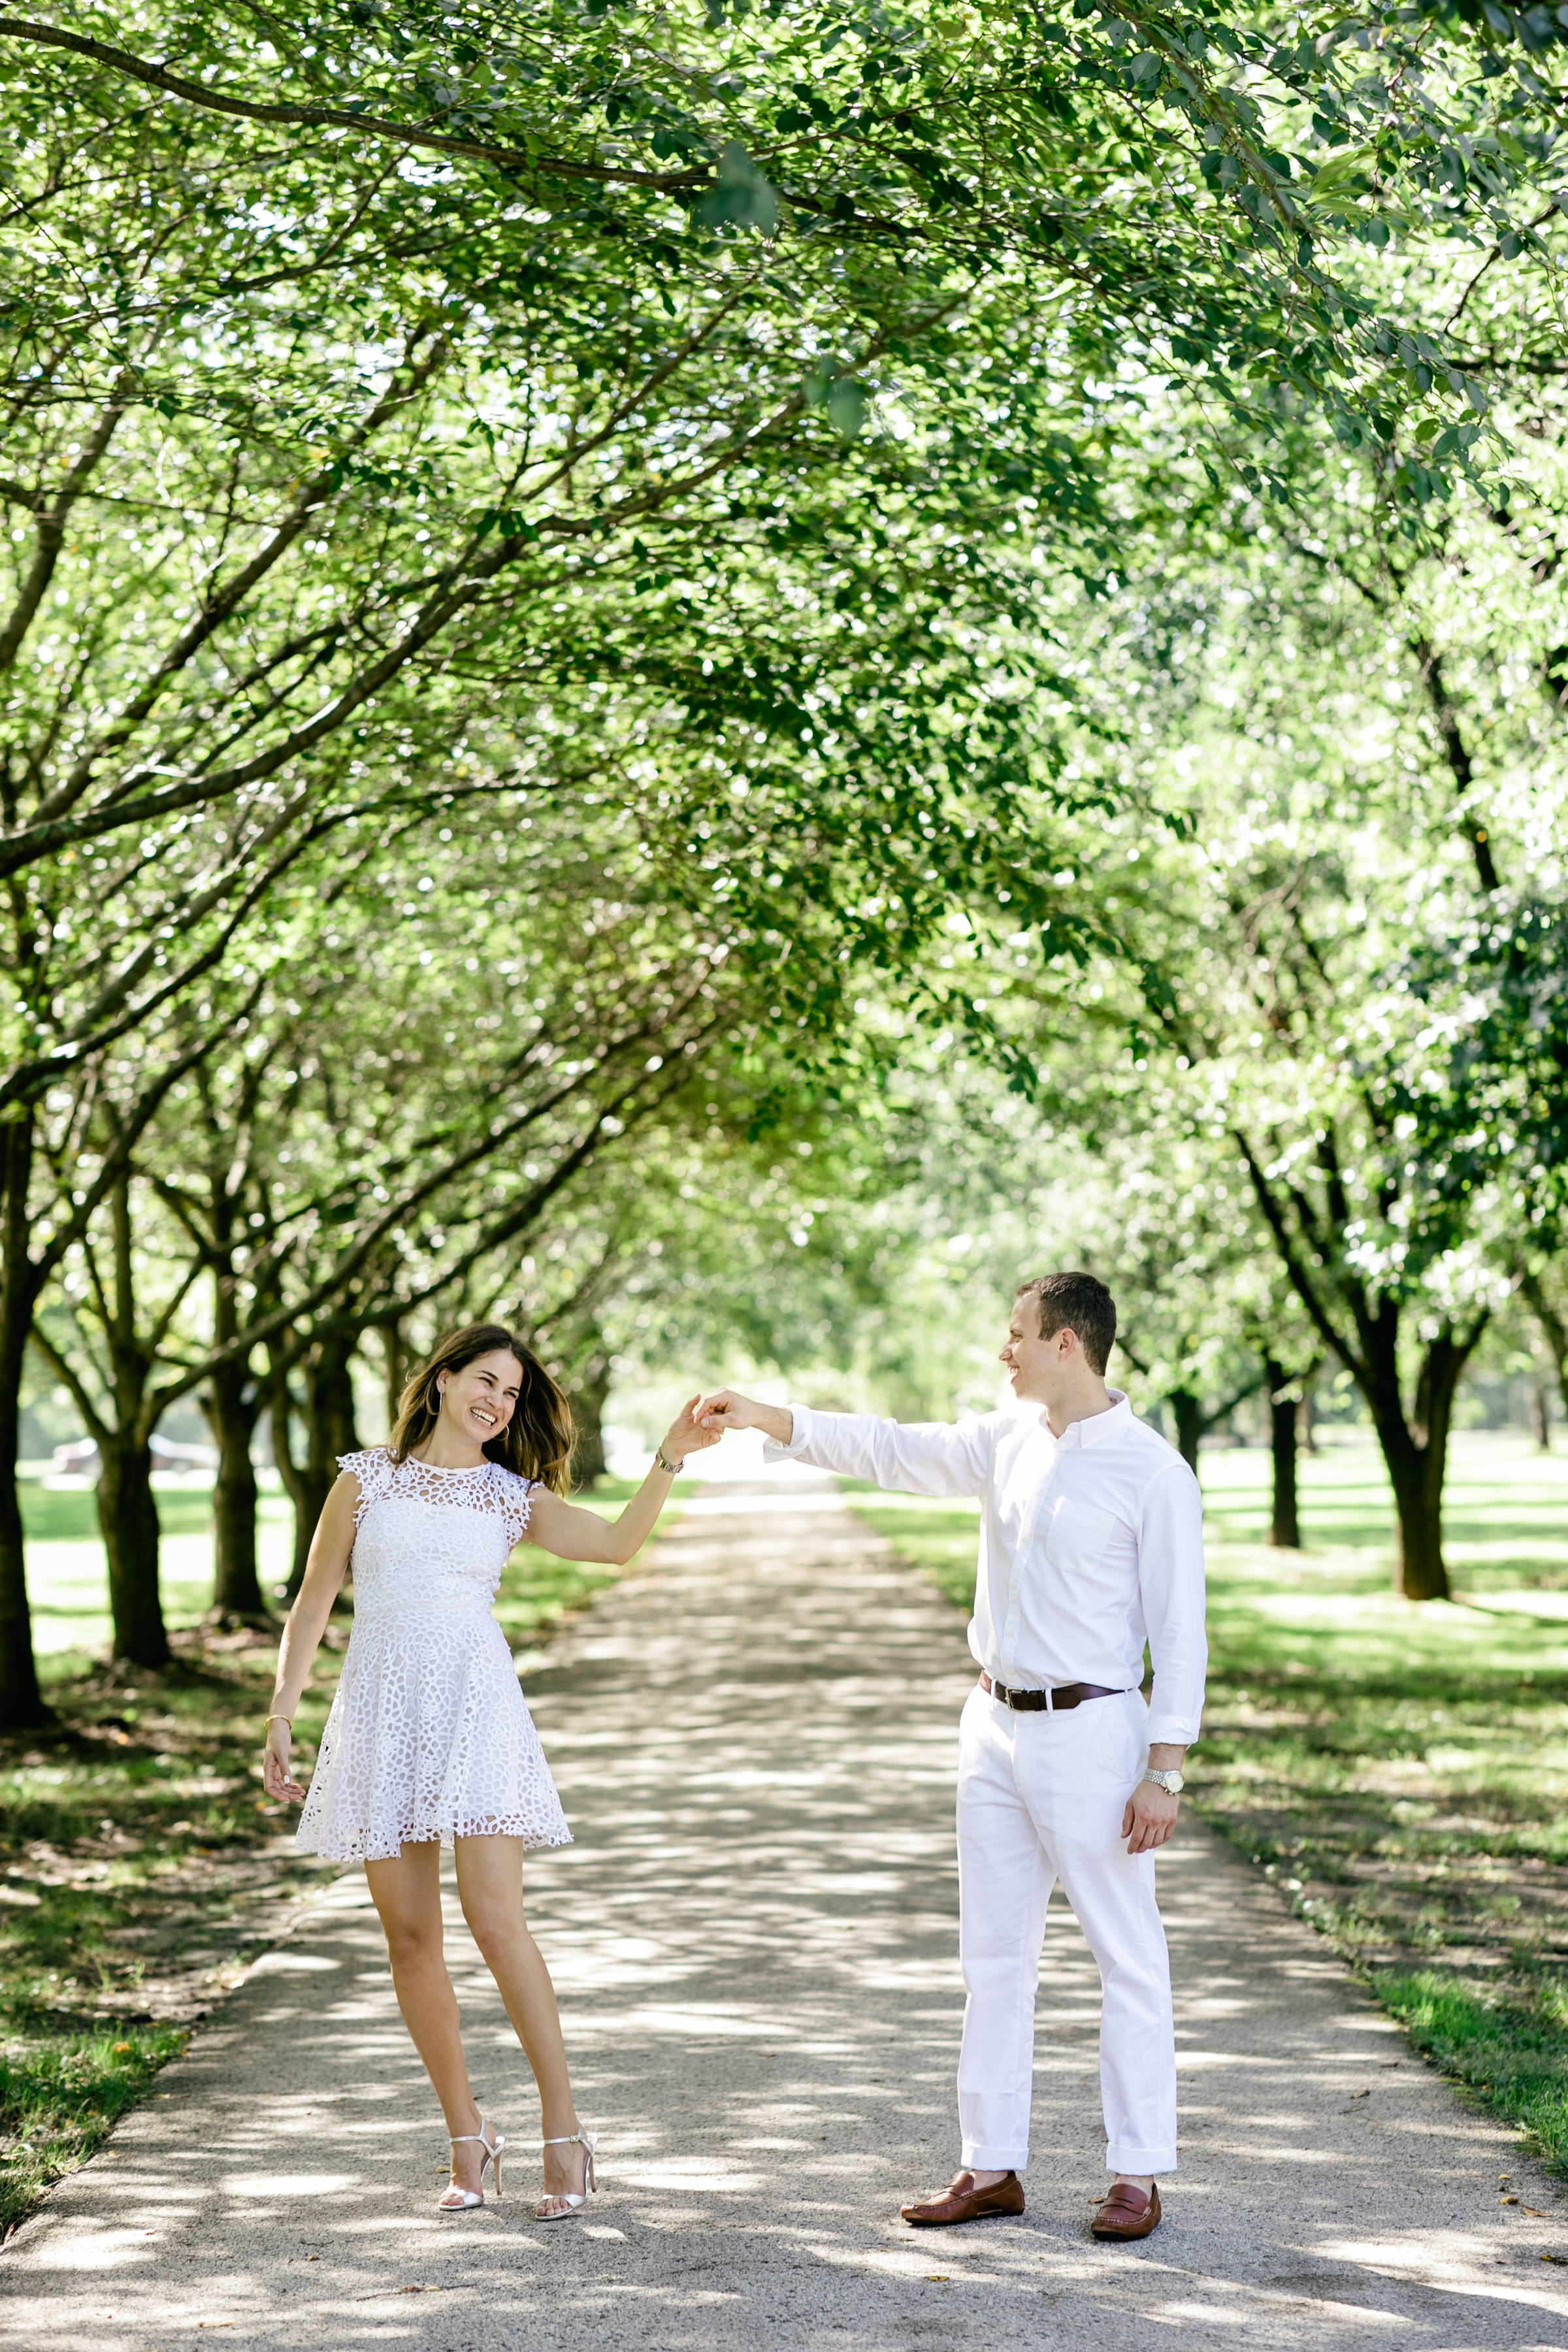 photography-family-natural-candid-engaged-fairmount-philadelphia-wedding-horticultural center-modern-lifestyle-17.JPG